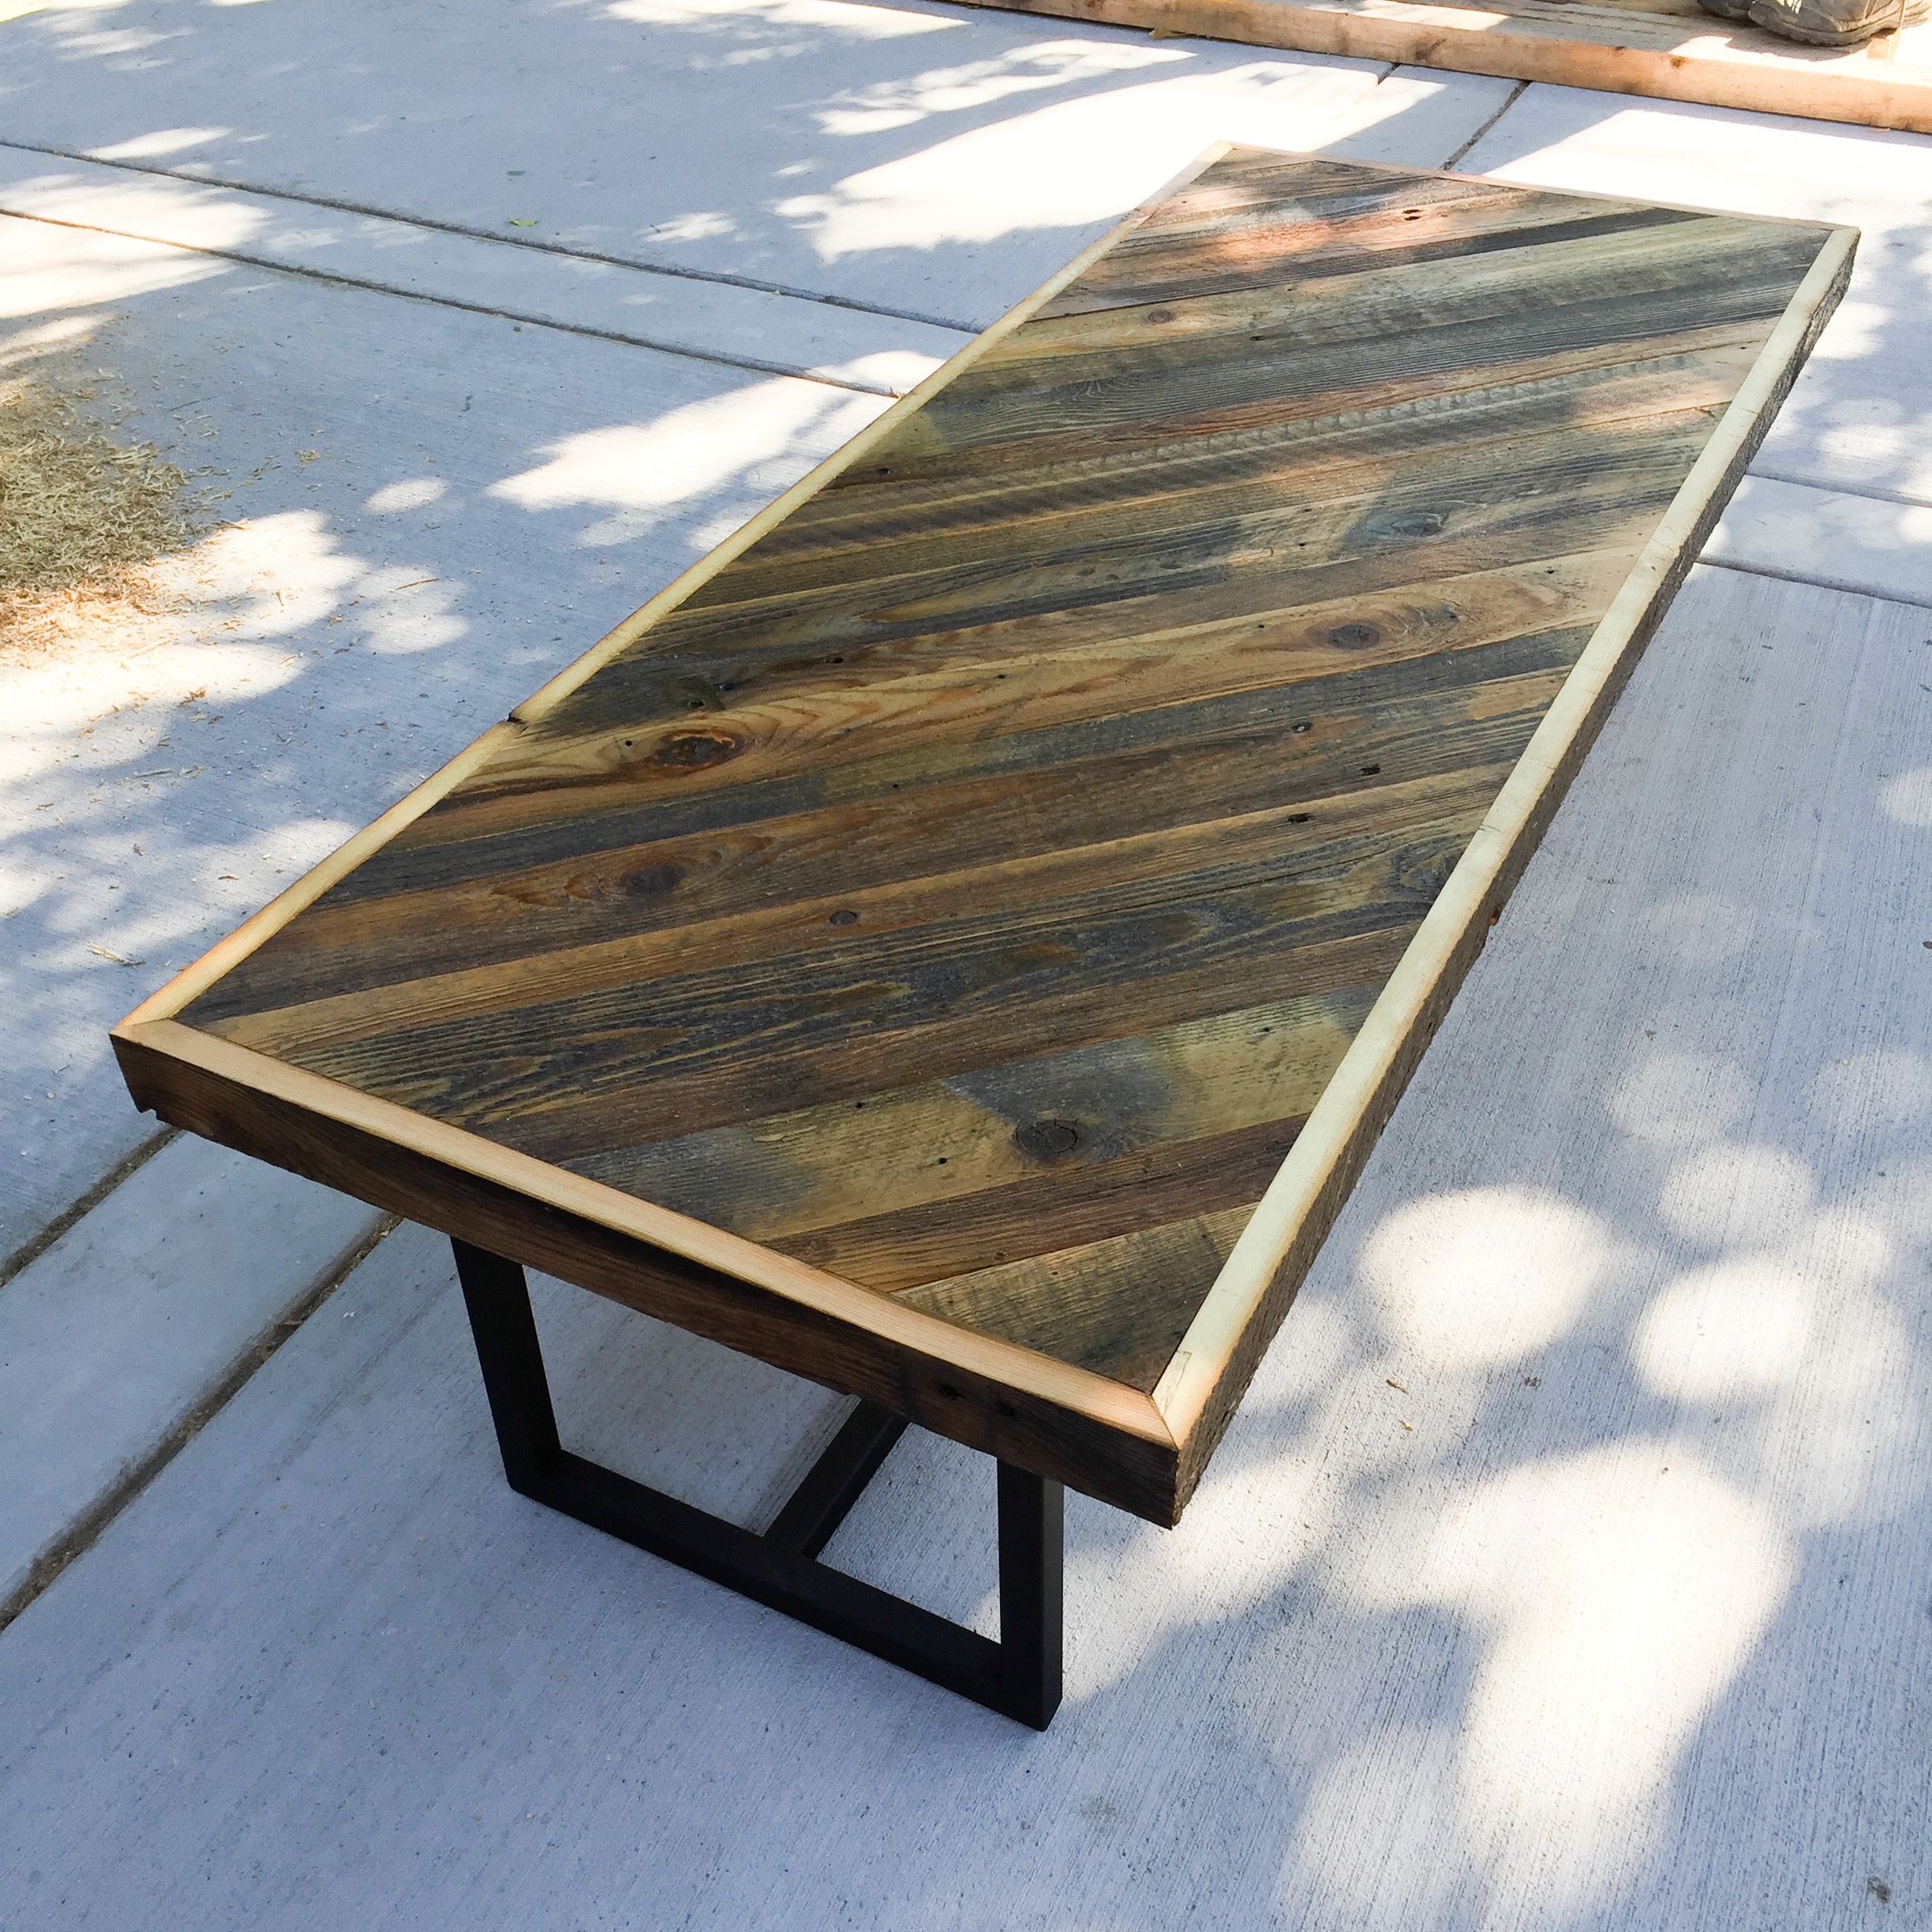 Reclaimed patterned table top with custom steel base.